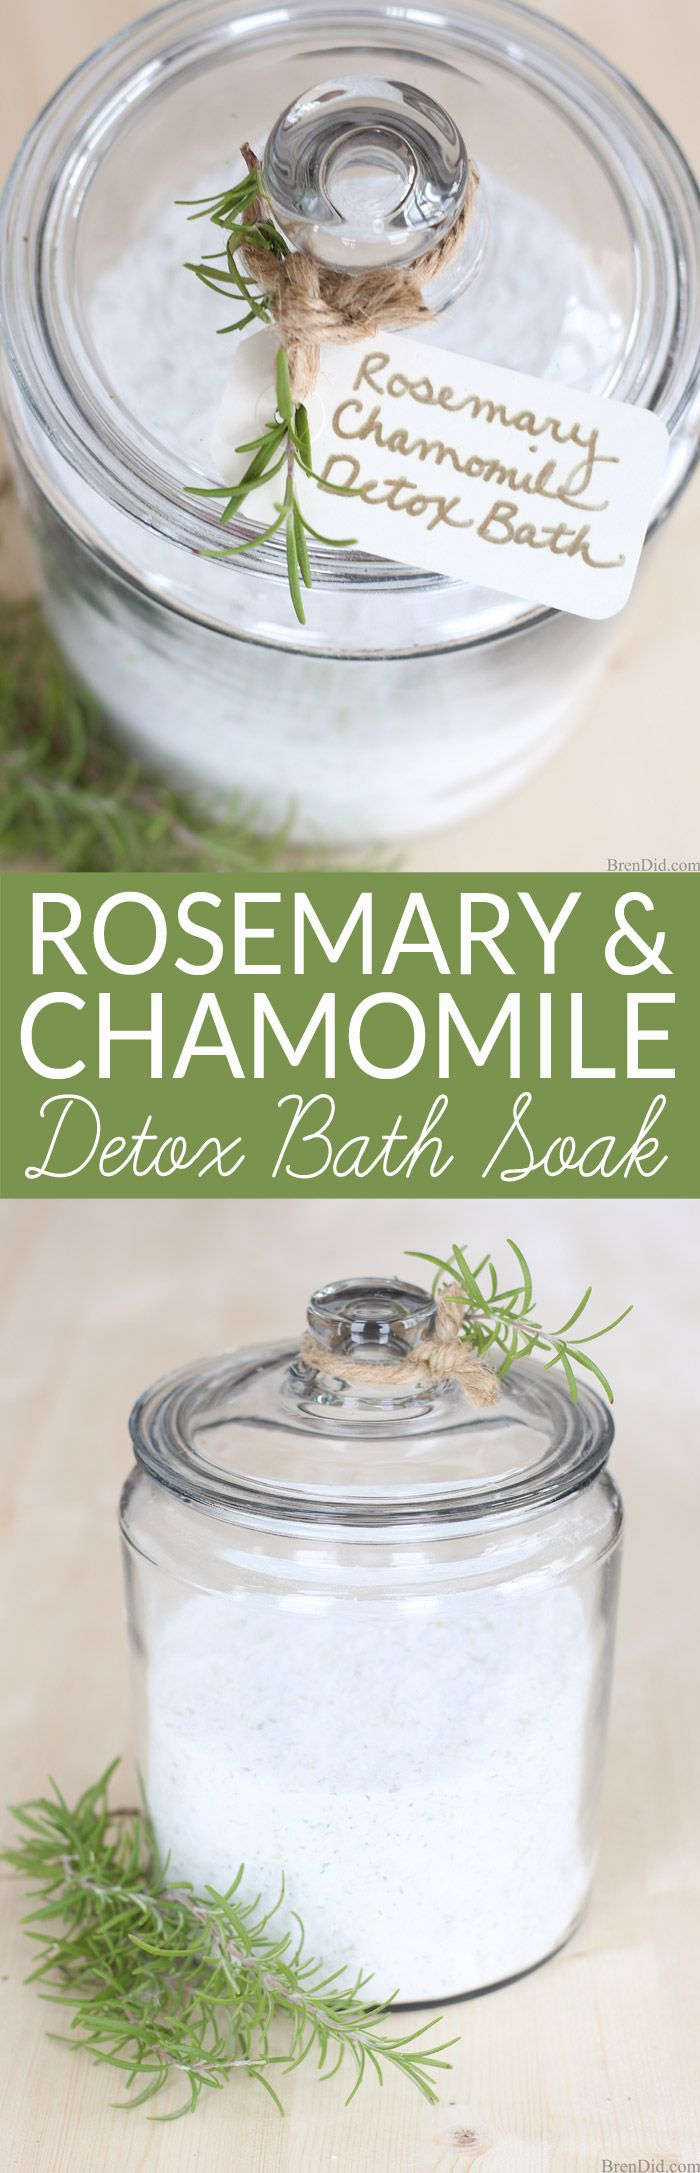 A hot bath is a relaxing way to unwind and end the day. It can be especially beneficially when you add detox bath salts that help to remove toxins,…